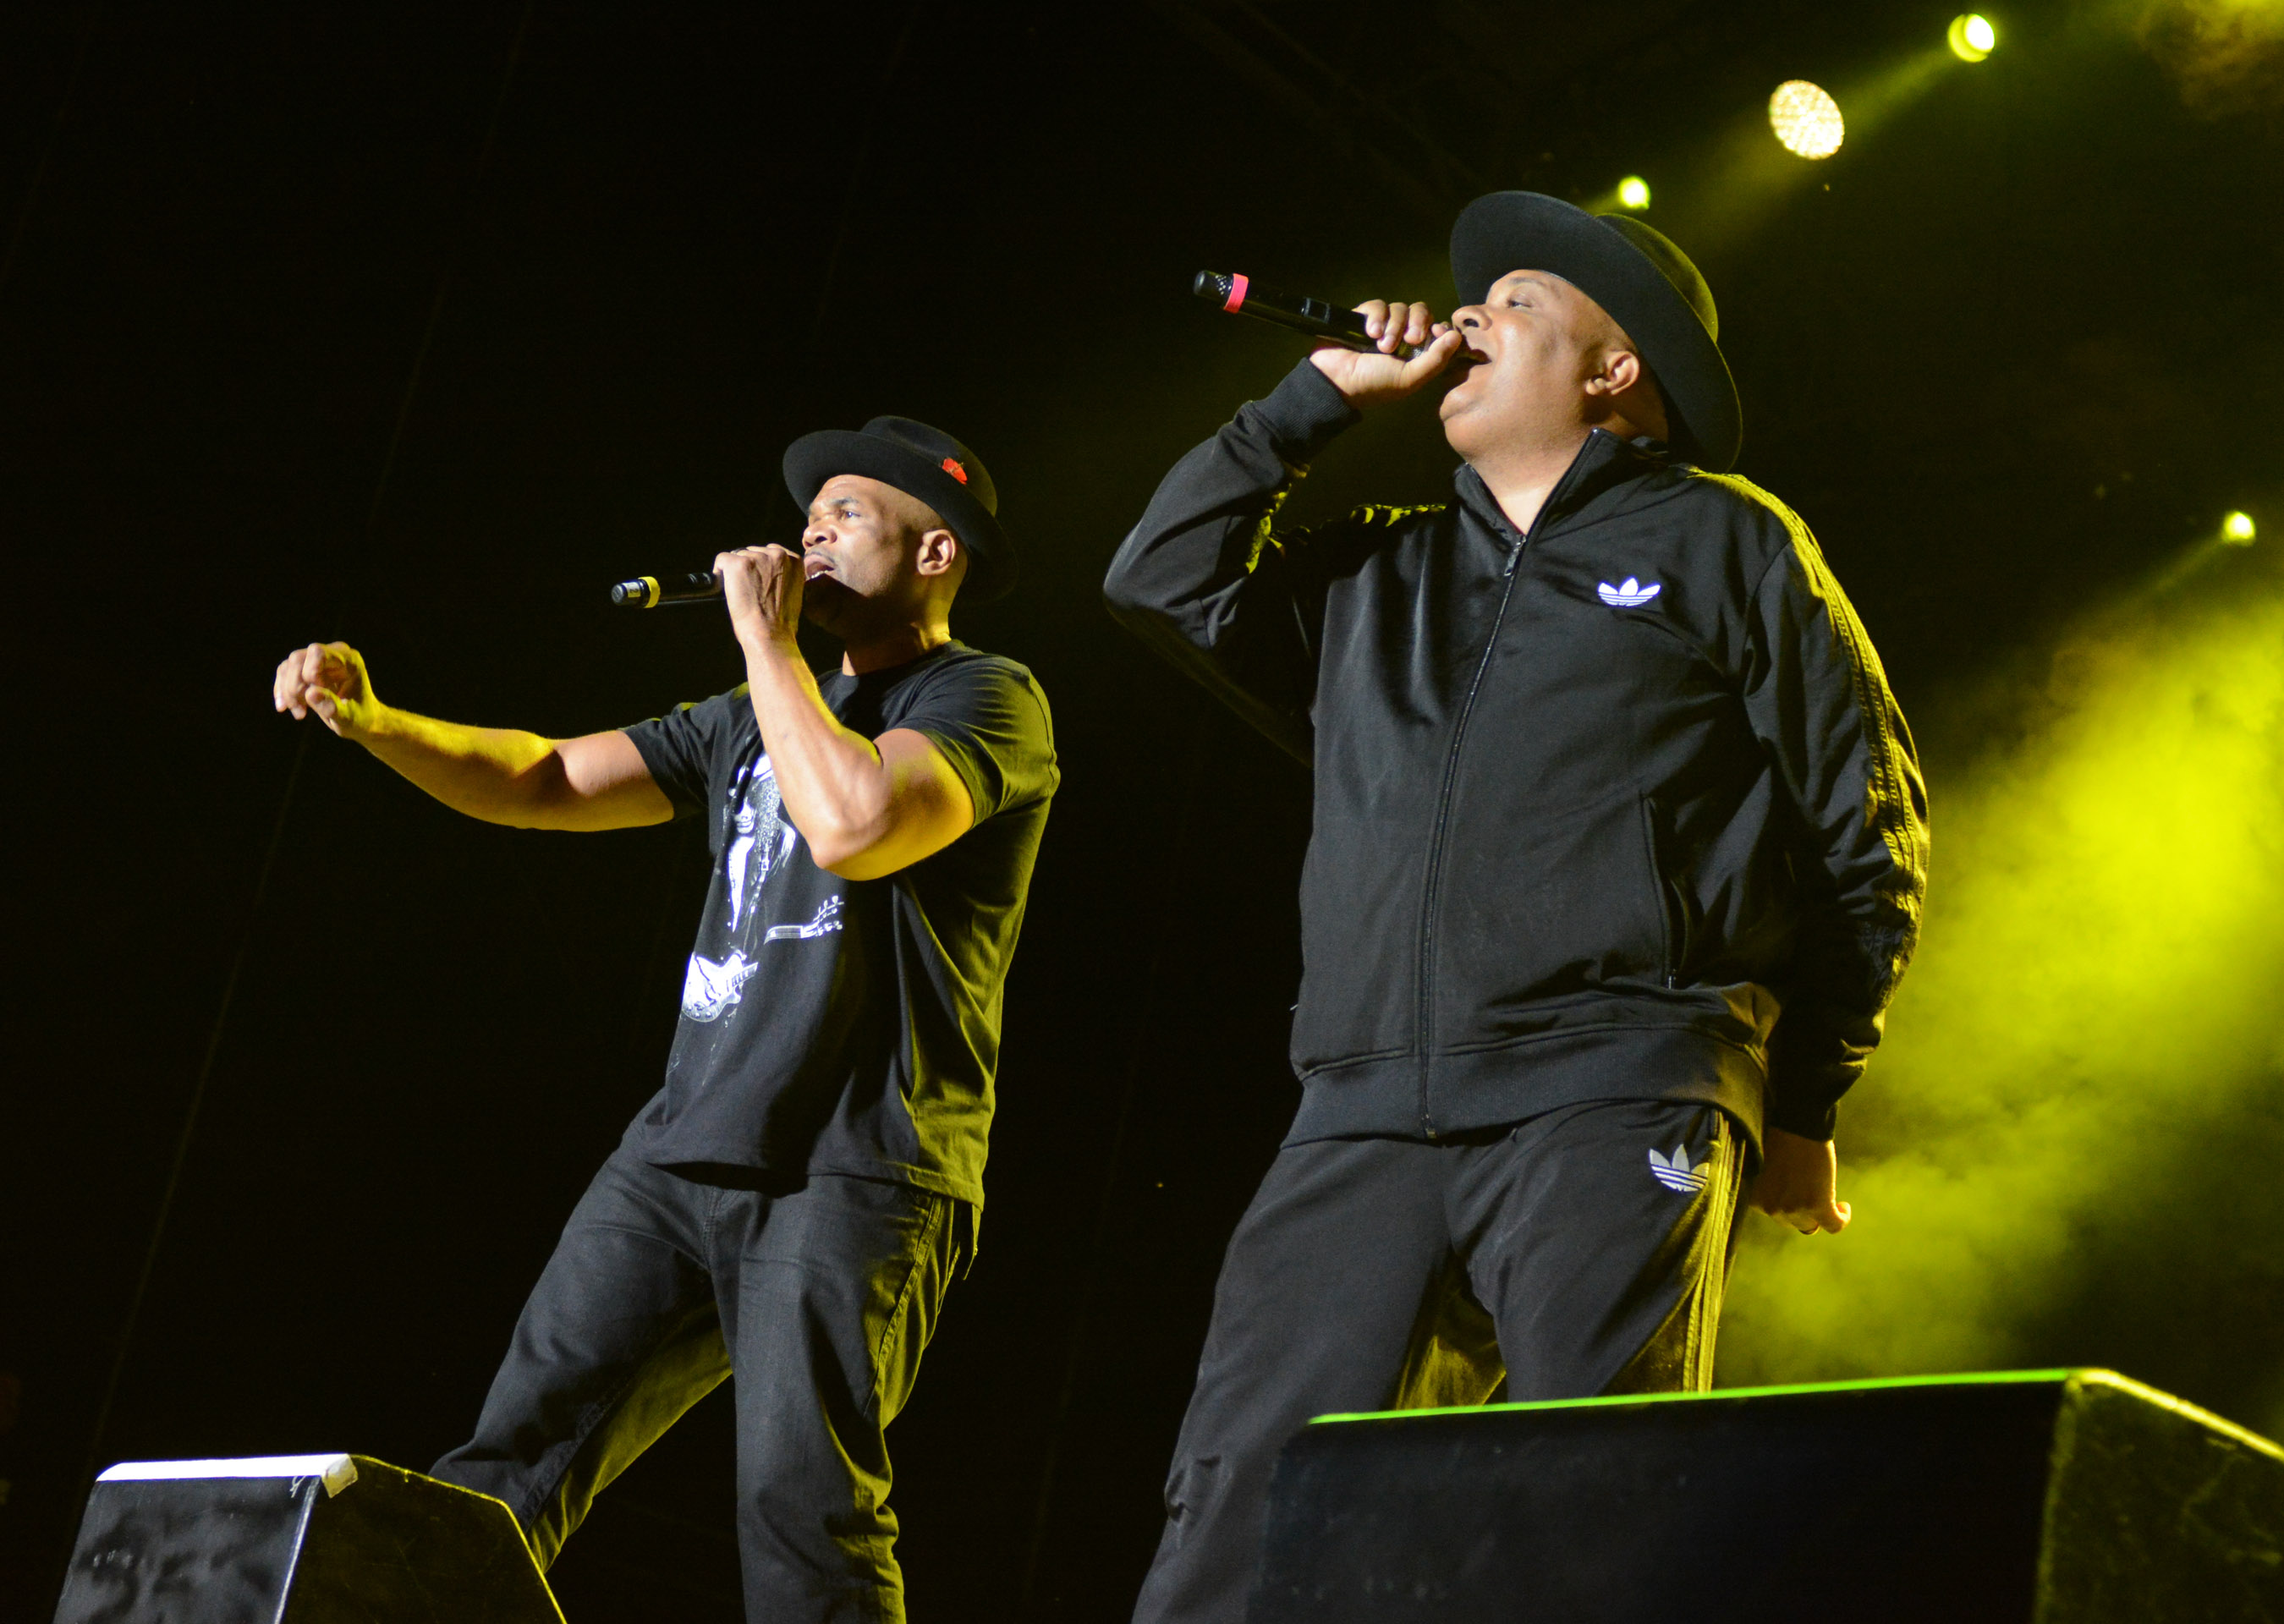 HIP-HOP LEGENDS RUN-DMC BRING BRIEF HEADLINING SHOW TO MUSIKFEST (PHOTOS)